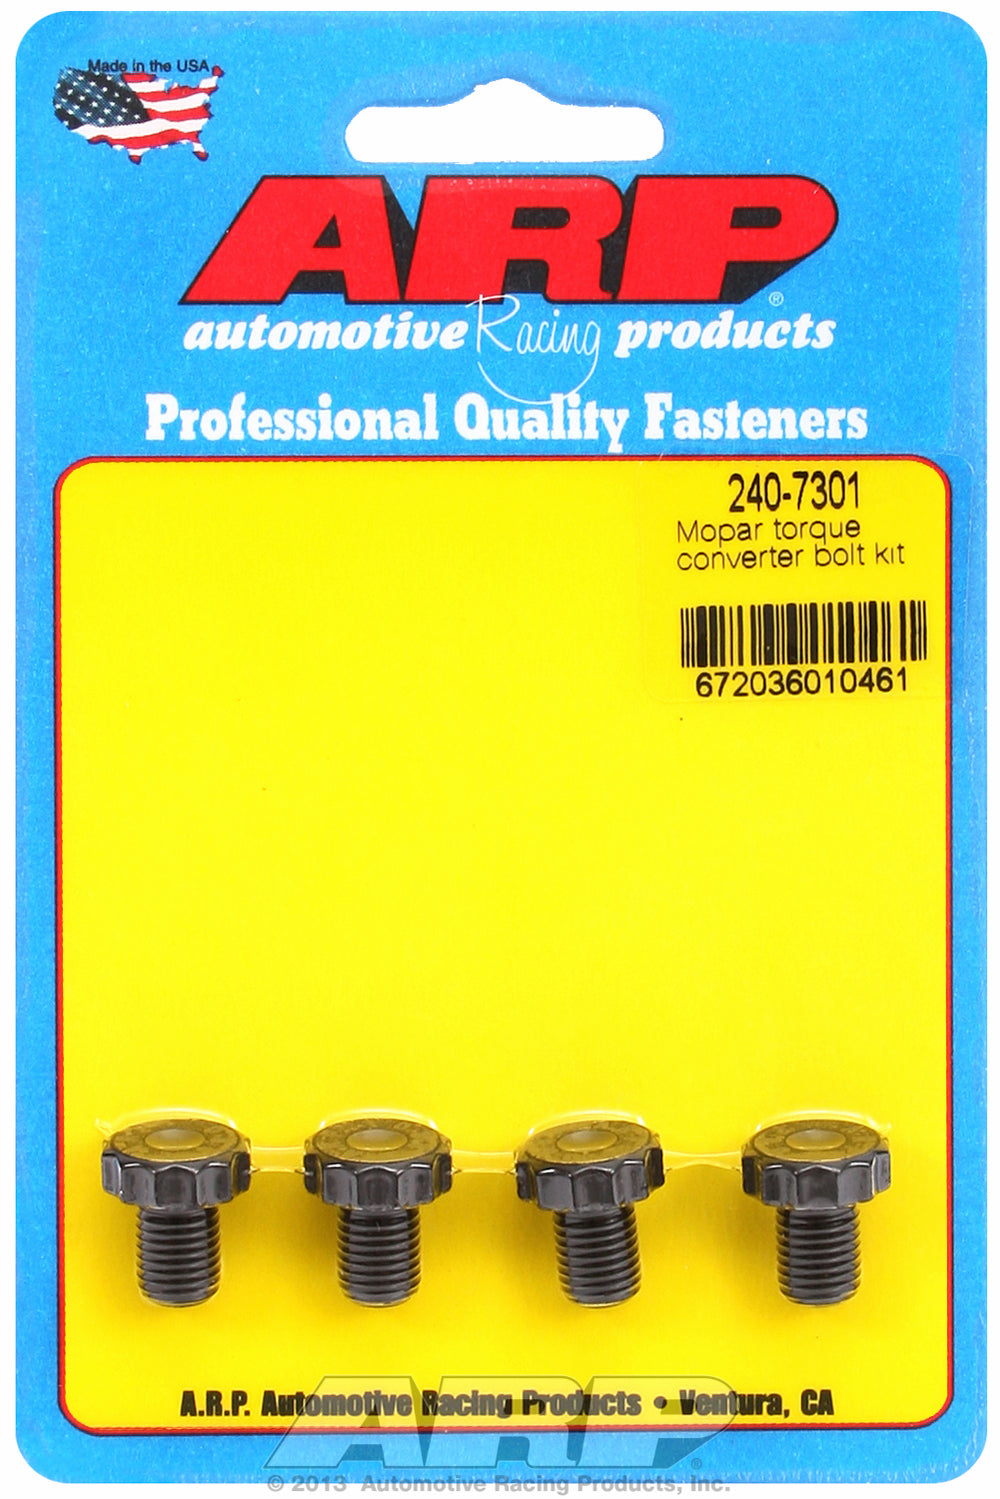 Pro Series Torque Converter Bolts for Chrysler,Dodge Torqueflite 727 & 904 w/ production converter